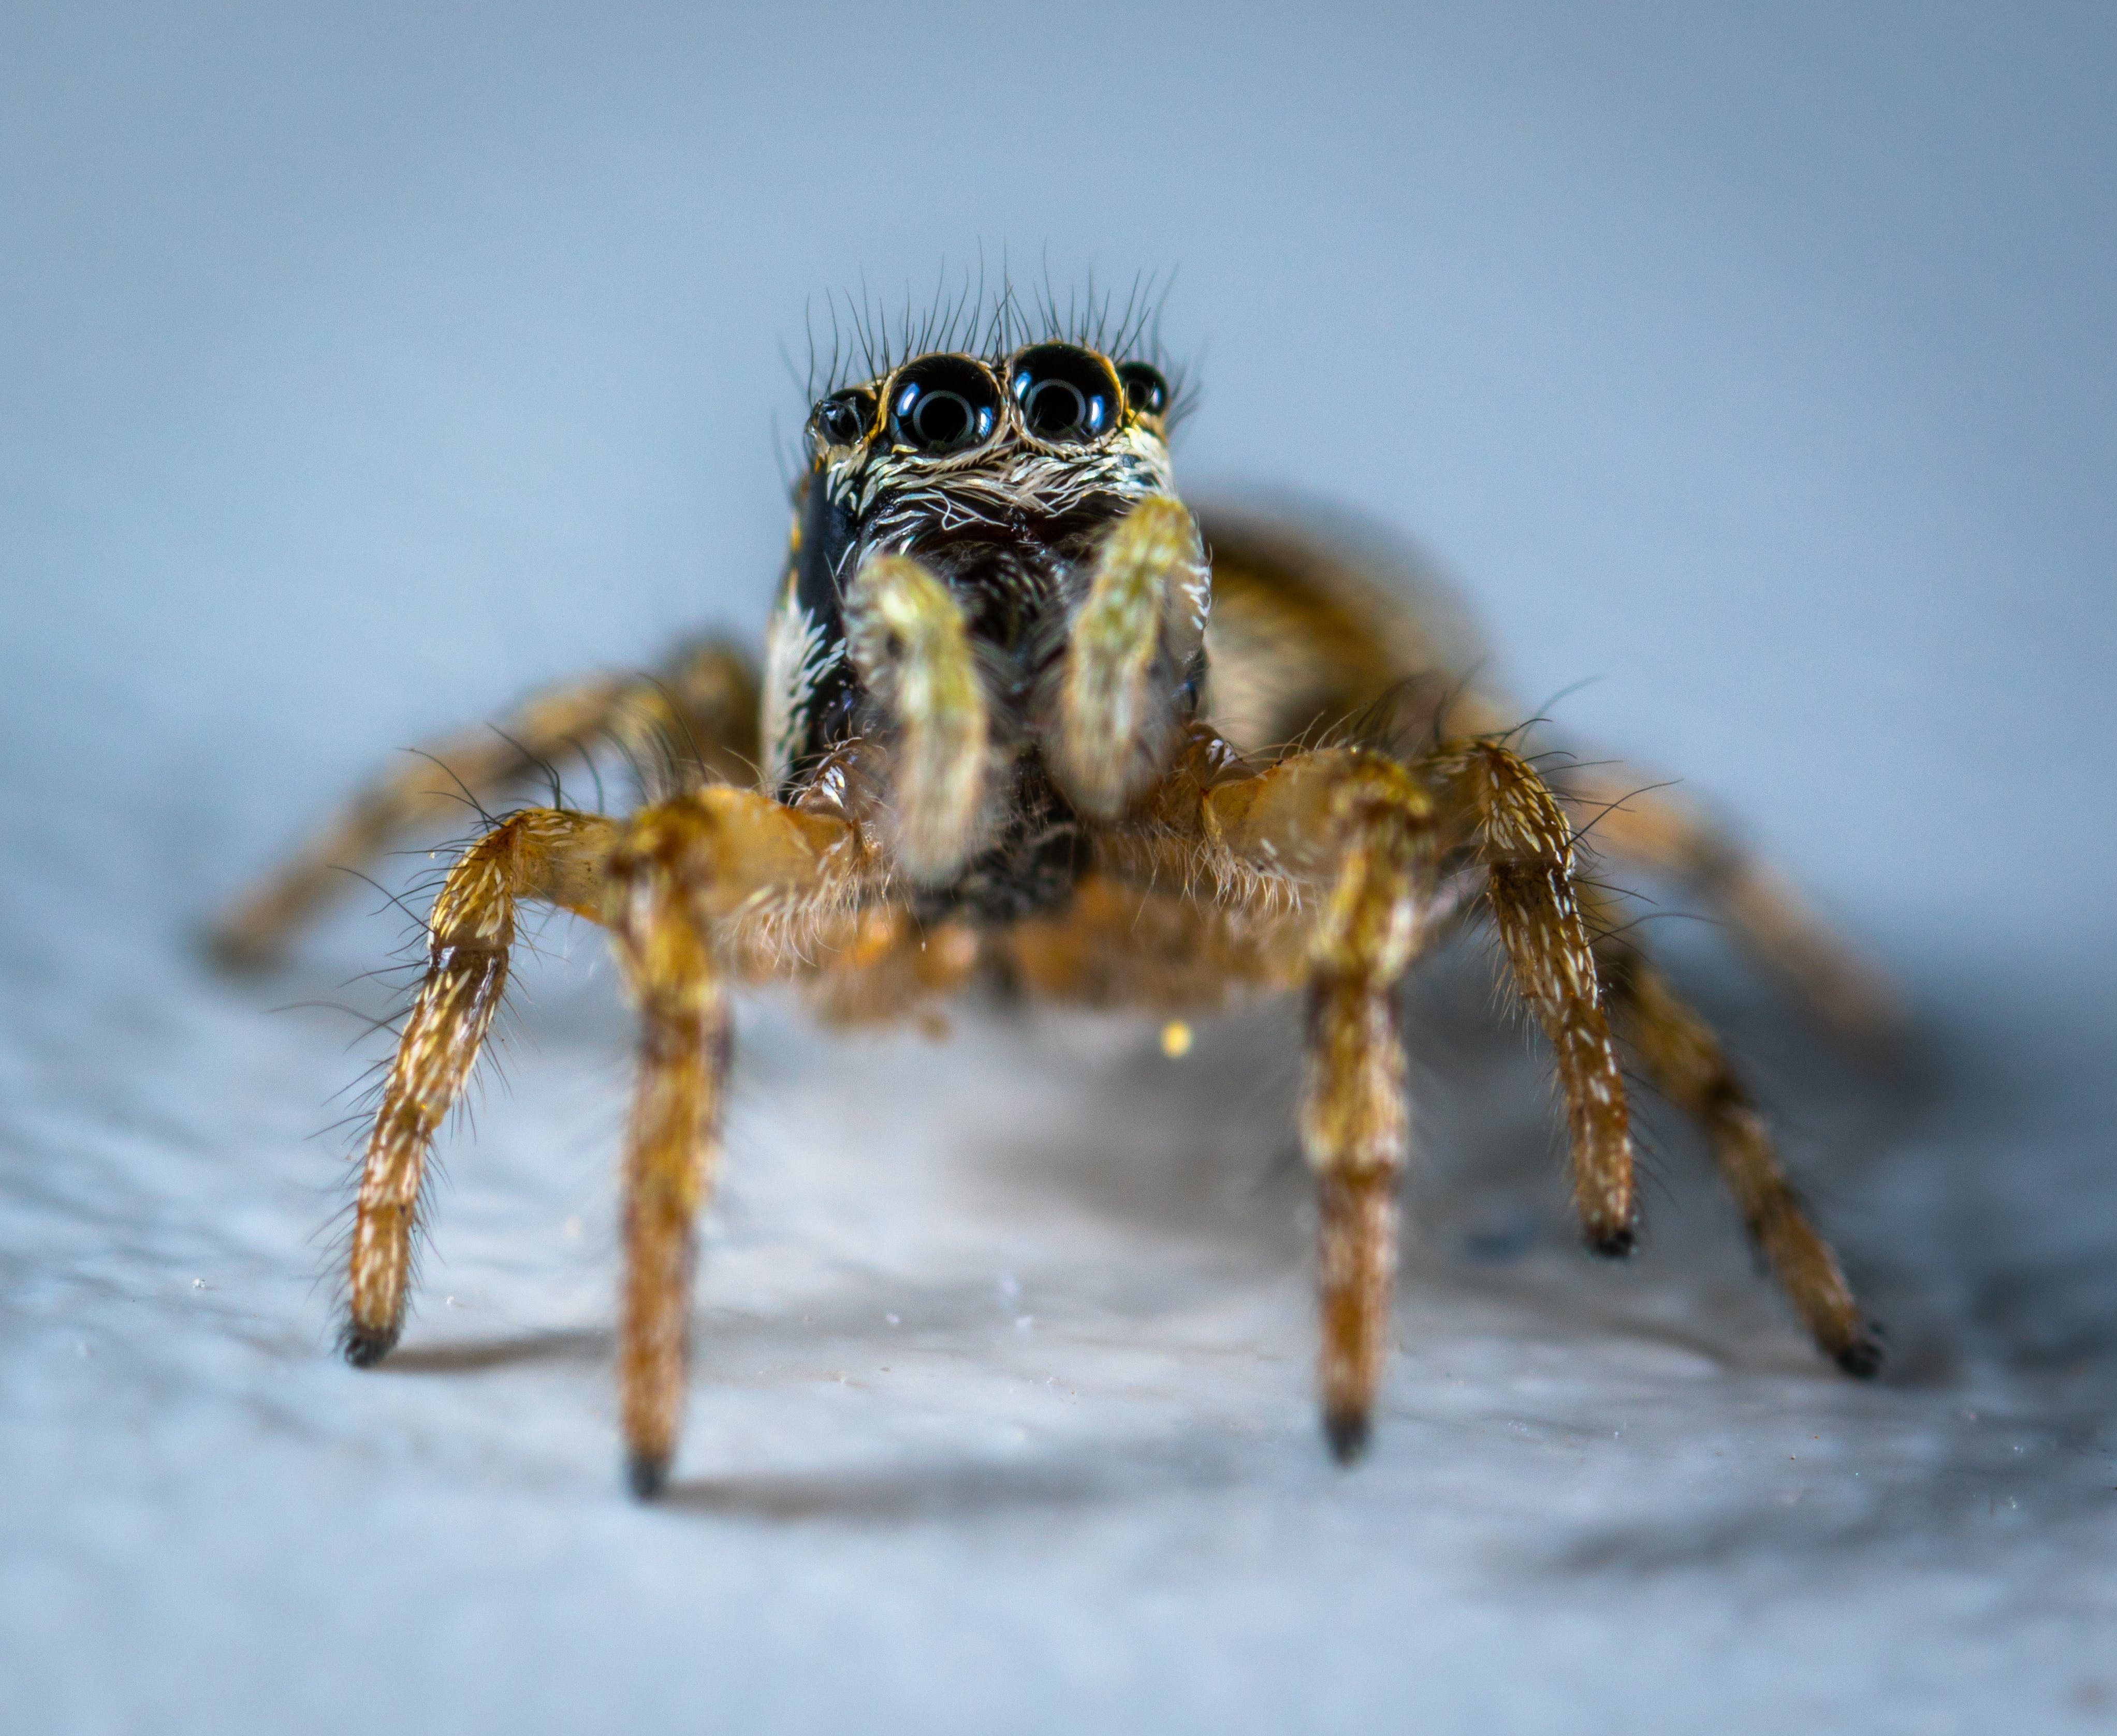 Spider Macro Photography